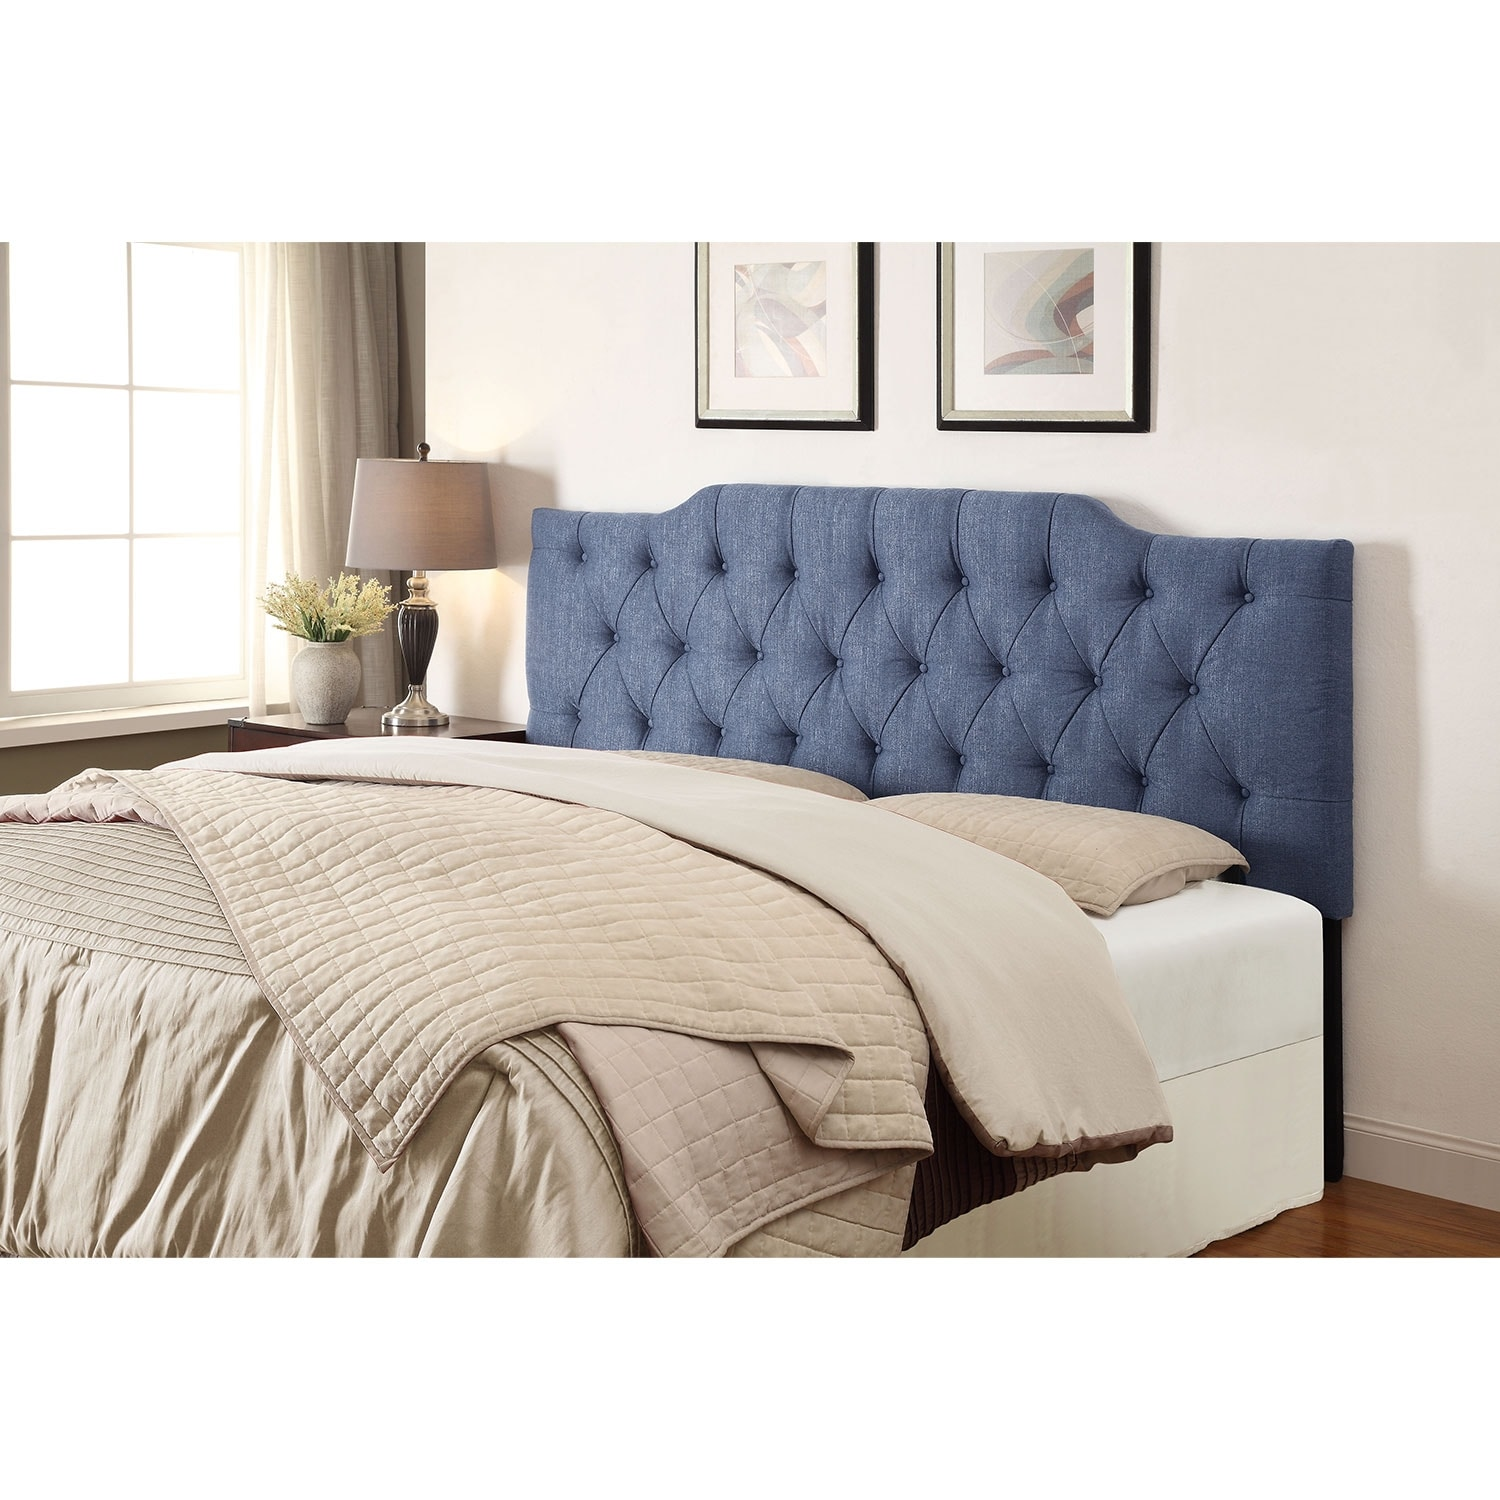 Smith Full/Queen Headboard - Denim